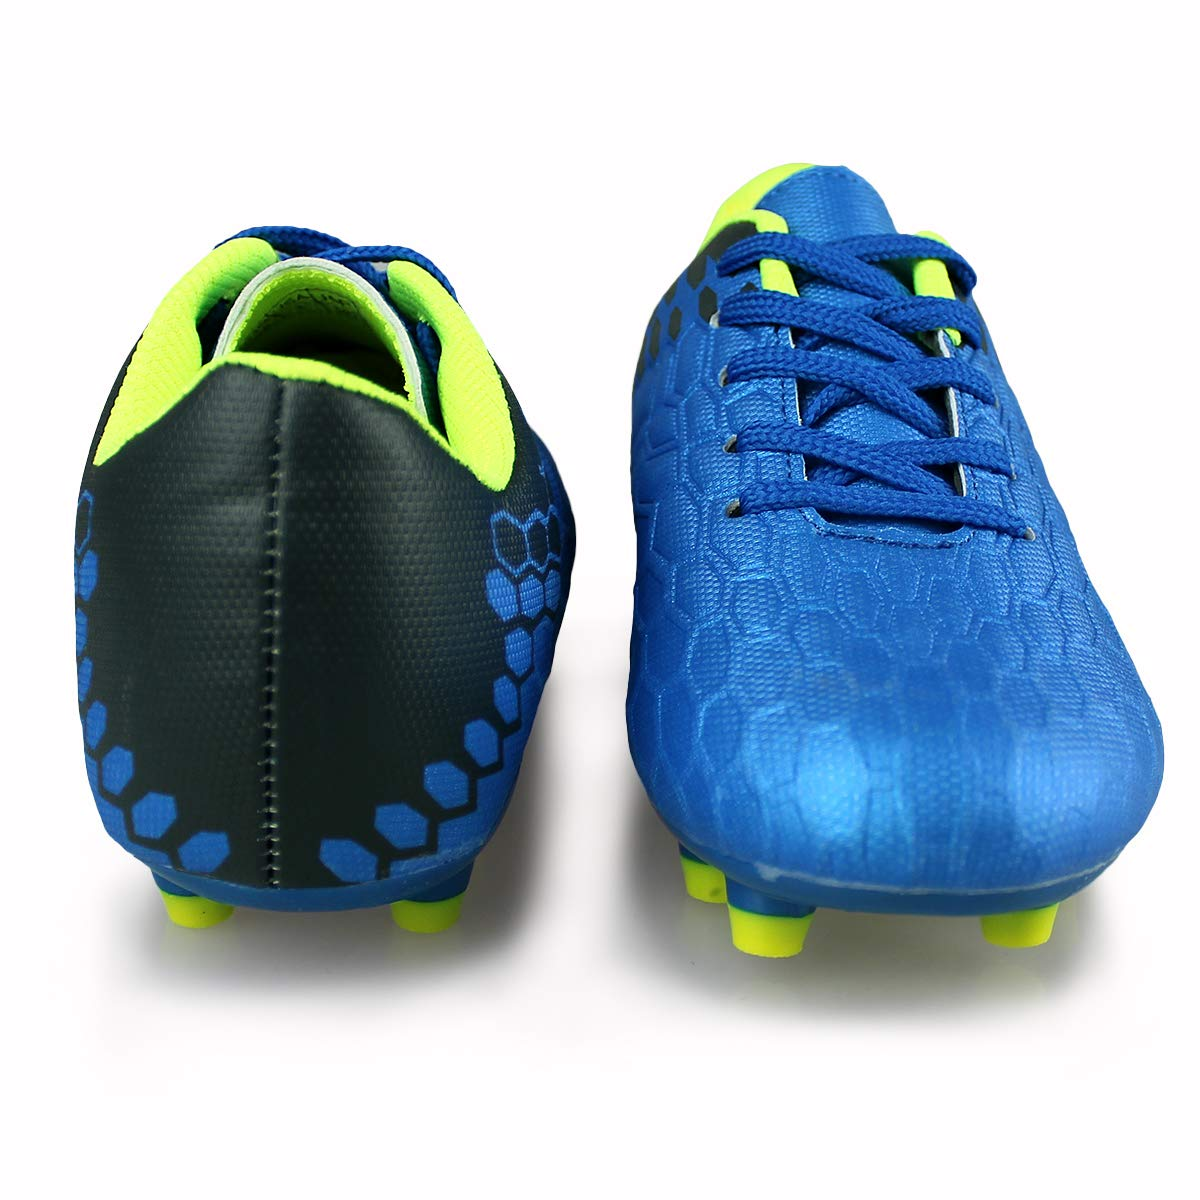 Hawkwell Kids Athletic Indoor Comfortable Soccer Shoes Toddler//Little Kid//Big Kid